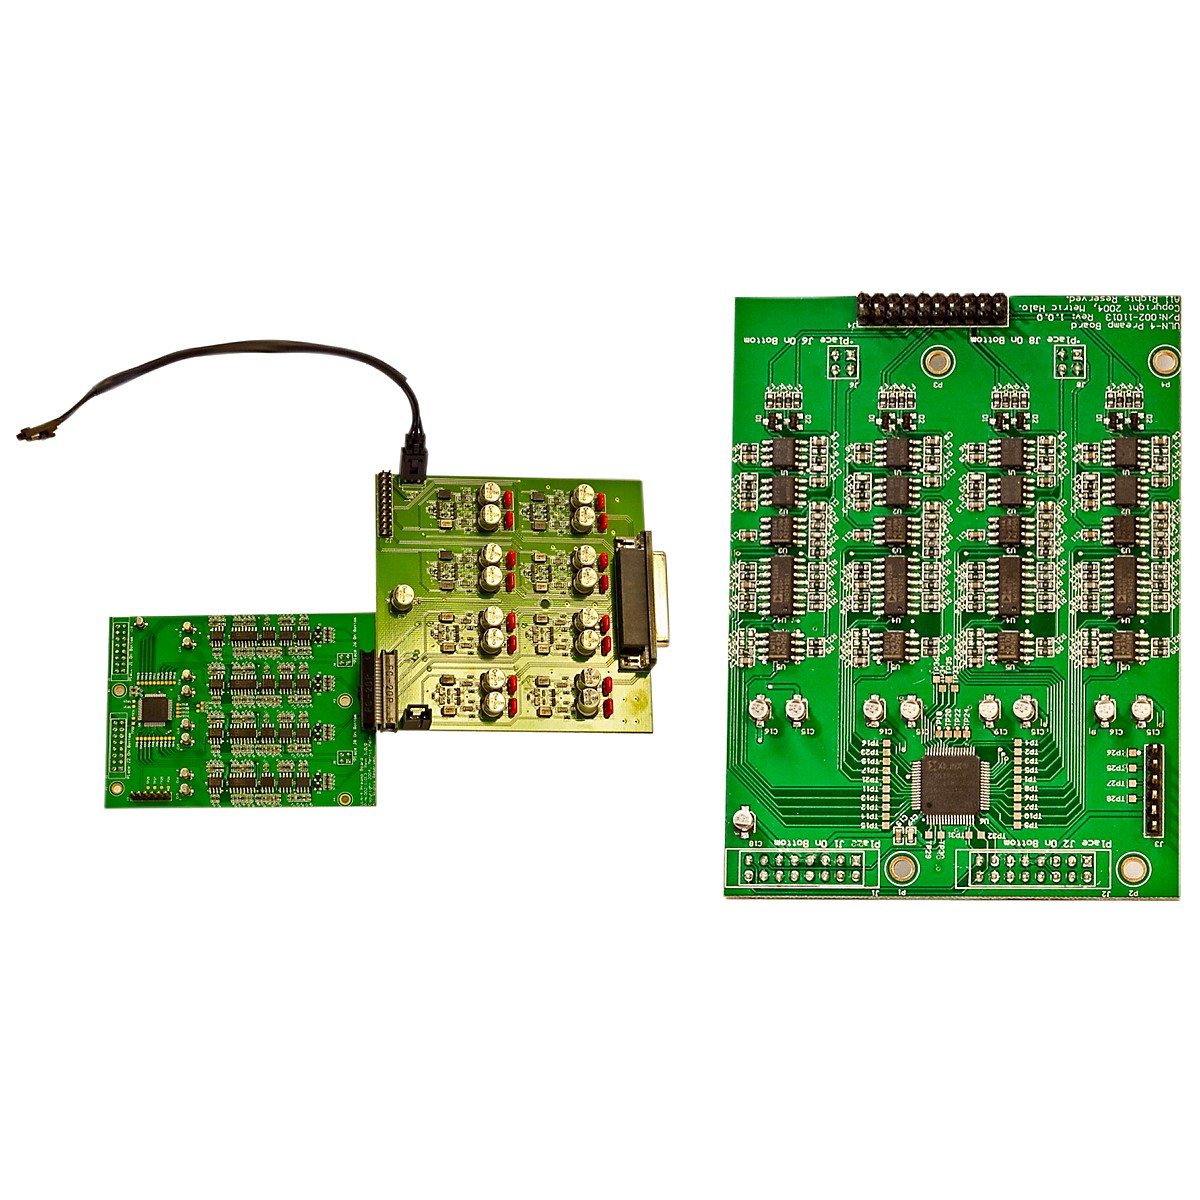 METRIC HALO LIO-8 8 Channel (1-8) ULN-R Preamp Kit